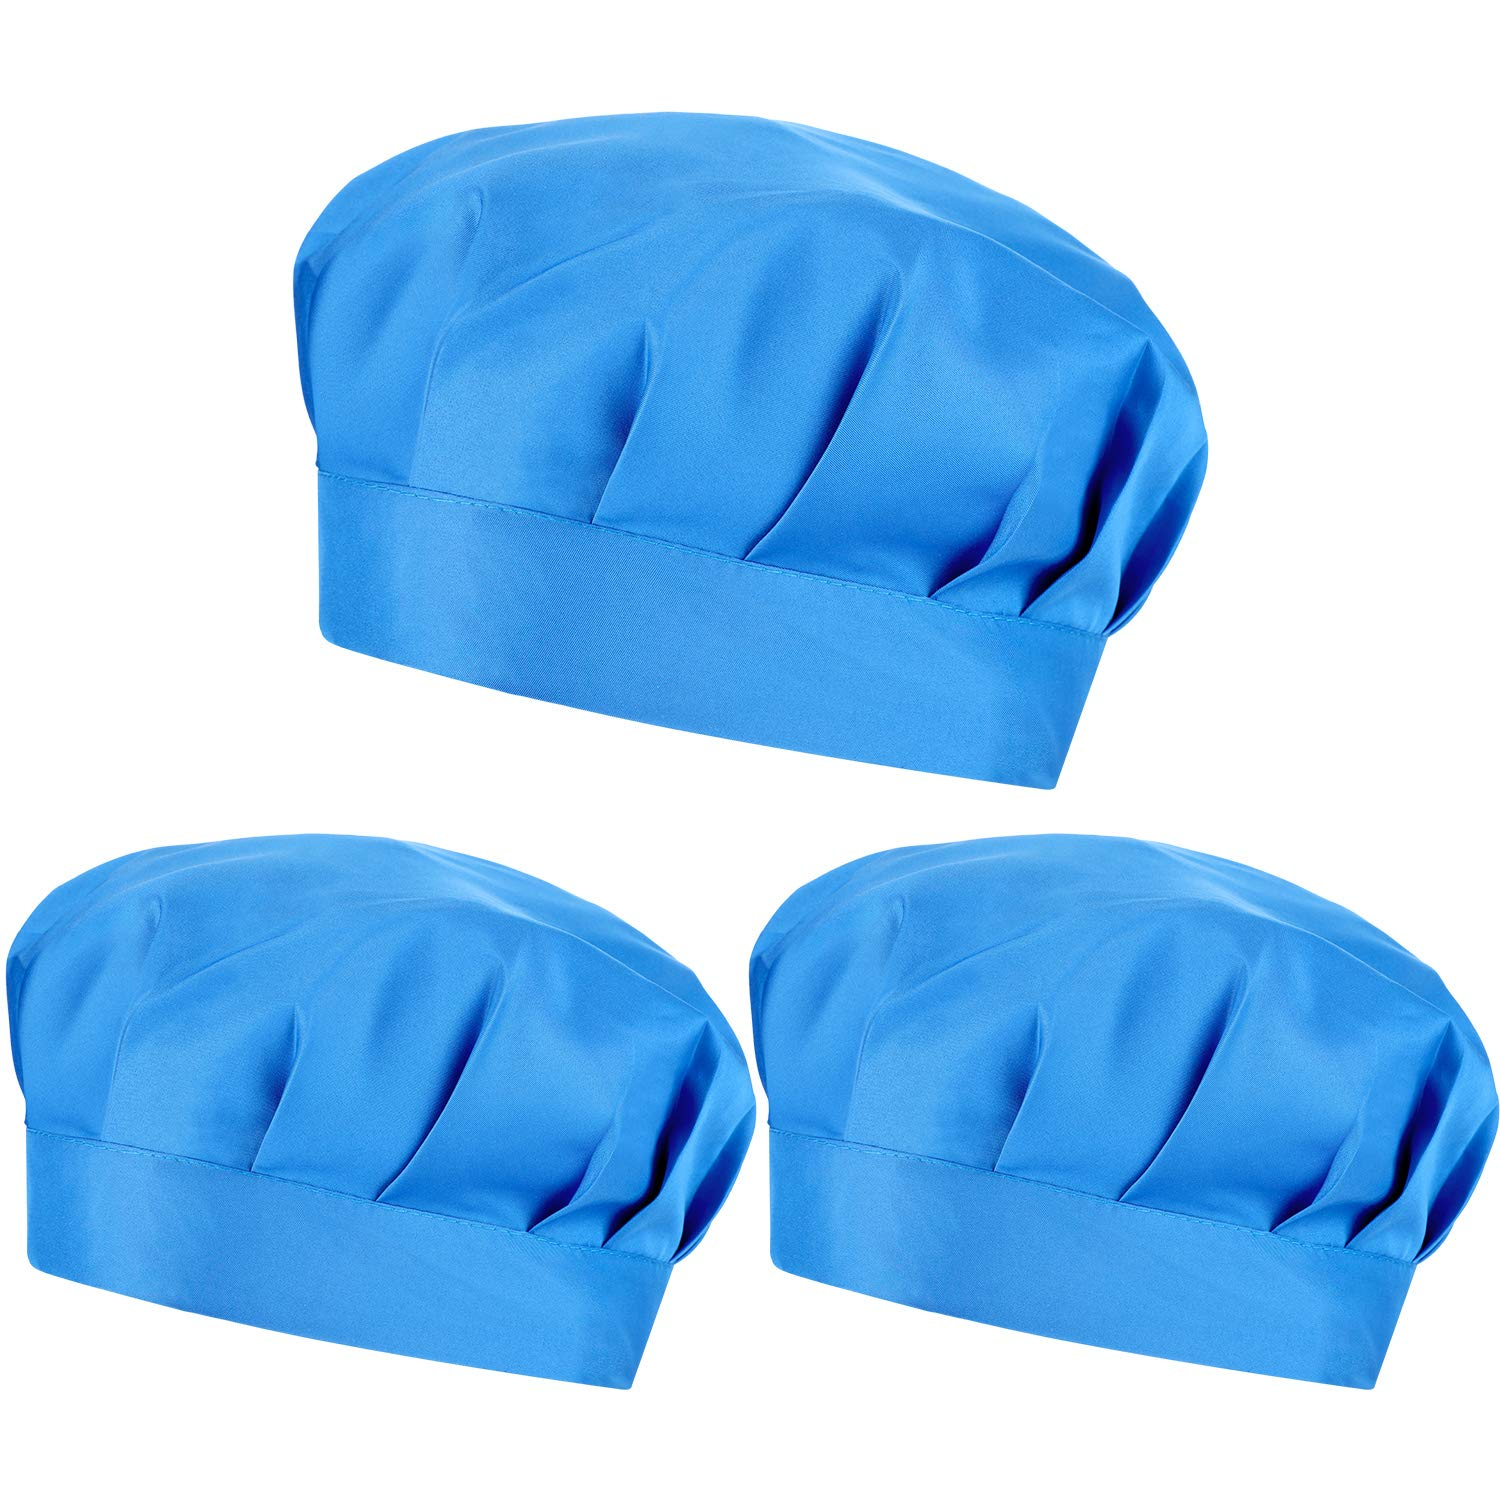 PRETYZOOM Surgical Scrub Caps Adjustable Bouffant Hats Elastic Head Covers Medical Doctor Men Women 3pcs